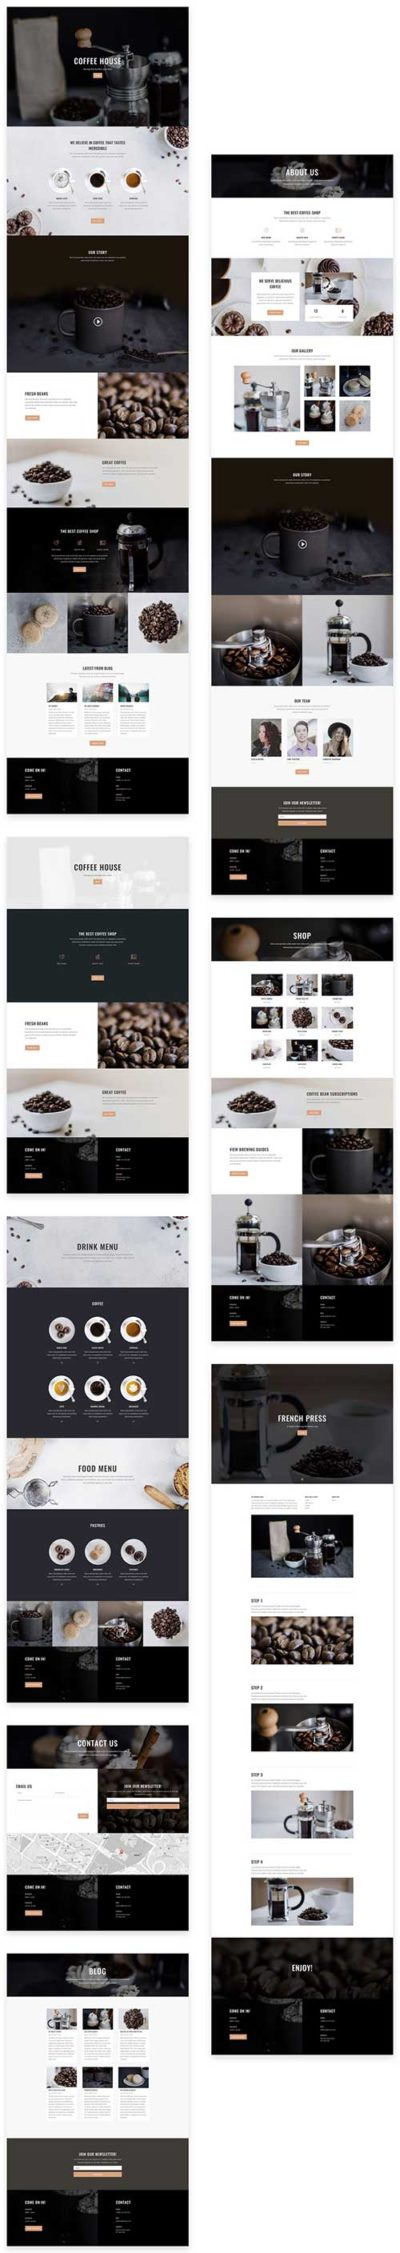 free divi layout for cafe or coffee shop